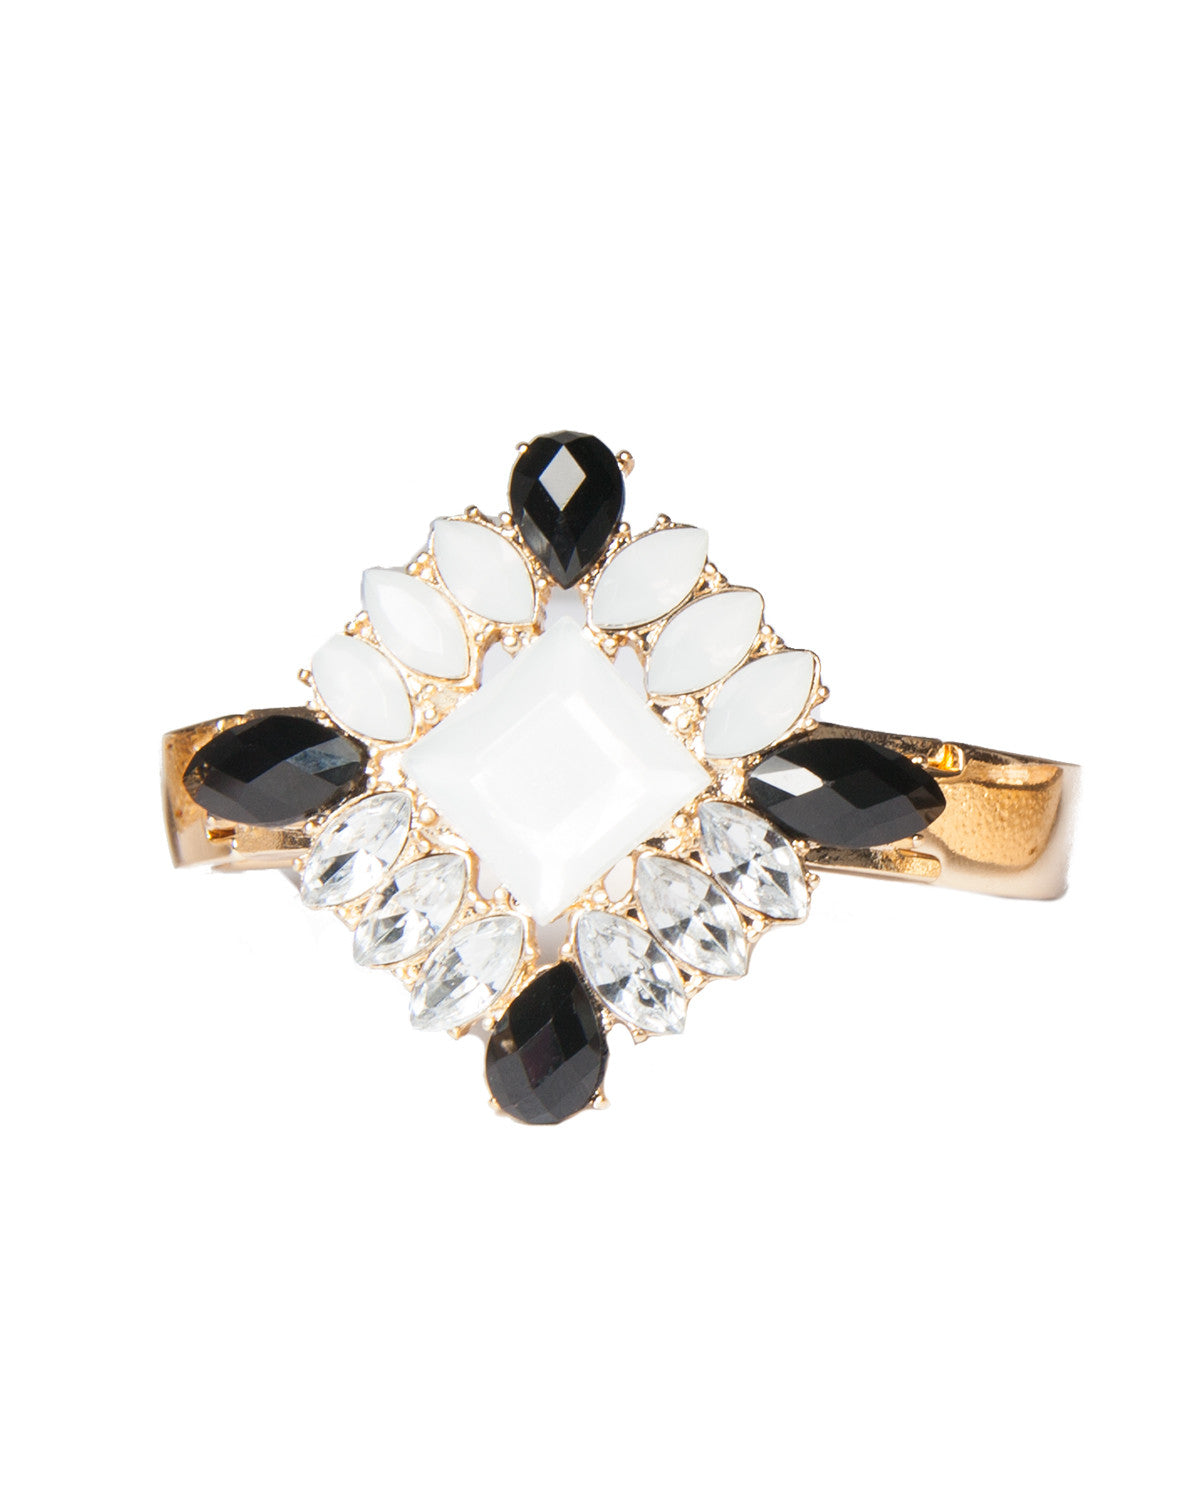 Rhombus Jeweled Bracelet